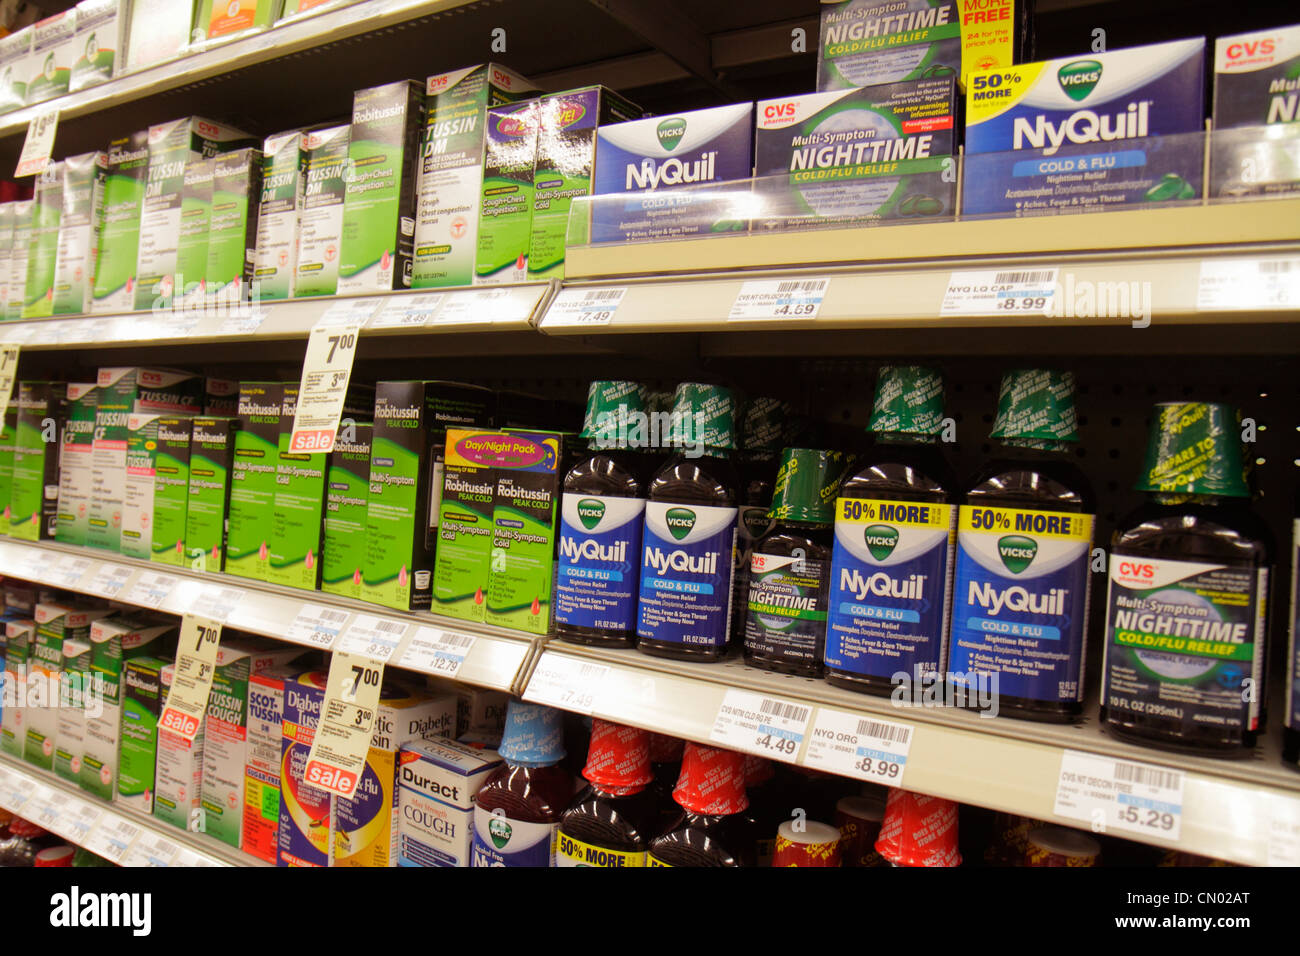 Miami Beach Florida Fifth Street Walgreens pharmacy drugstore retail display for sale packaging competing brands - Stock Image